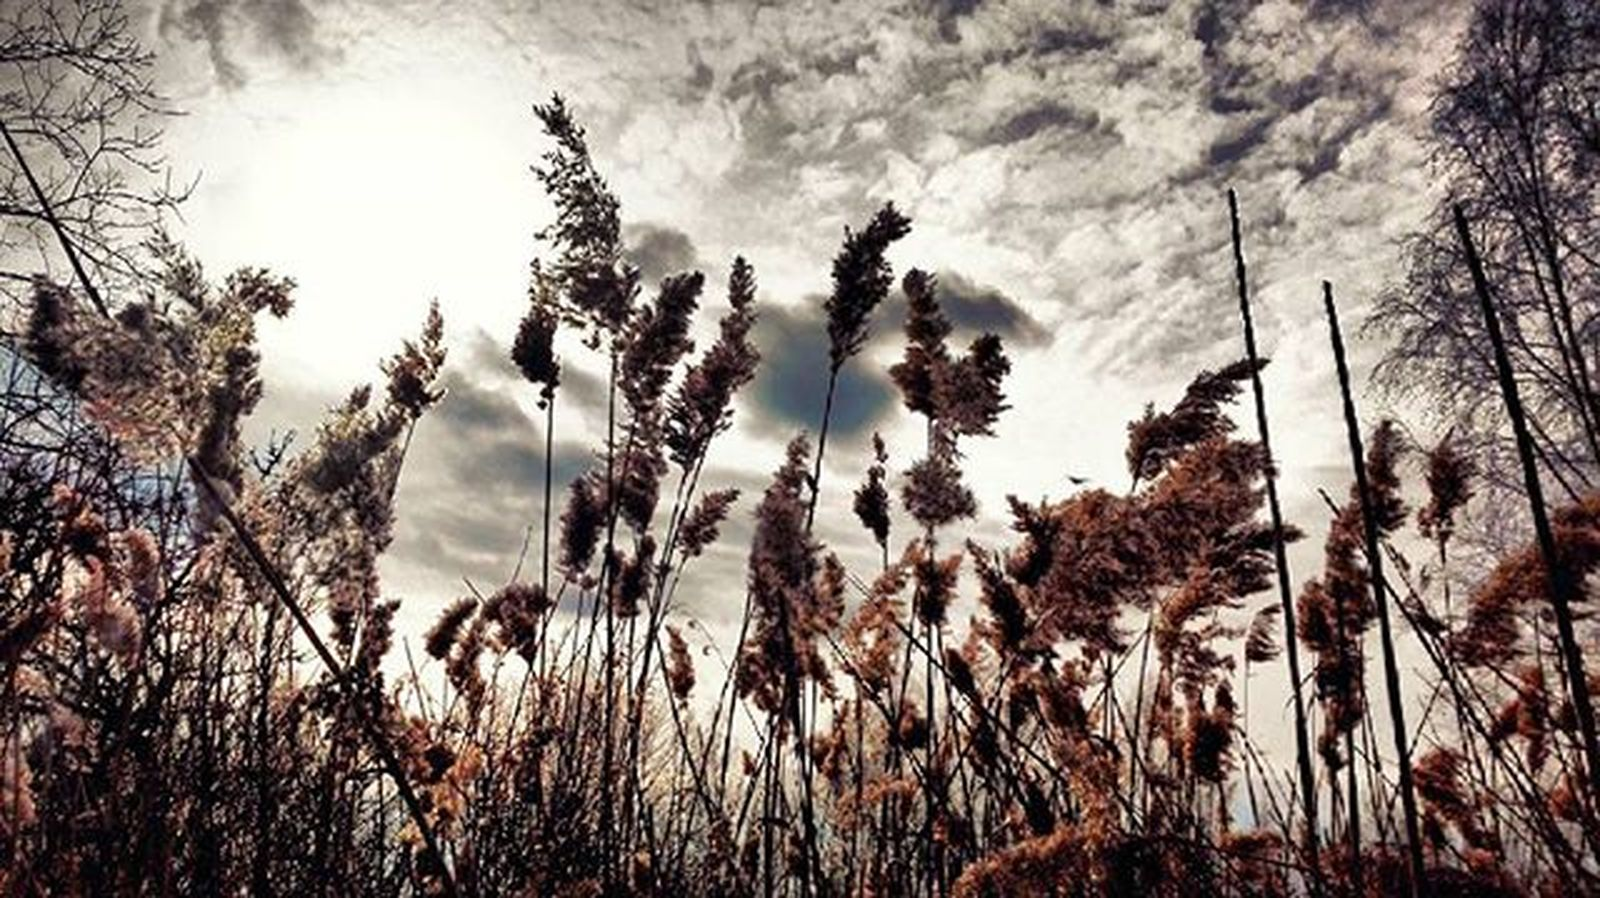 Morning walk with @reimartina :D (maybe not-so morning) Nature Grass Poaceae Sky Clouds Skyporn Sun Dramatic Photoshoot HDR Naturelover HuaweiP8Lite Huawei Photography Walk Morning Instapic Instadaily Photooftheday Follow Beautiful Detail Wanderlust Exploring